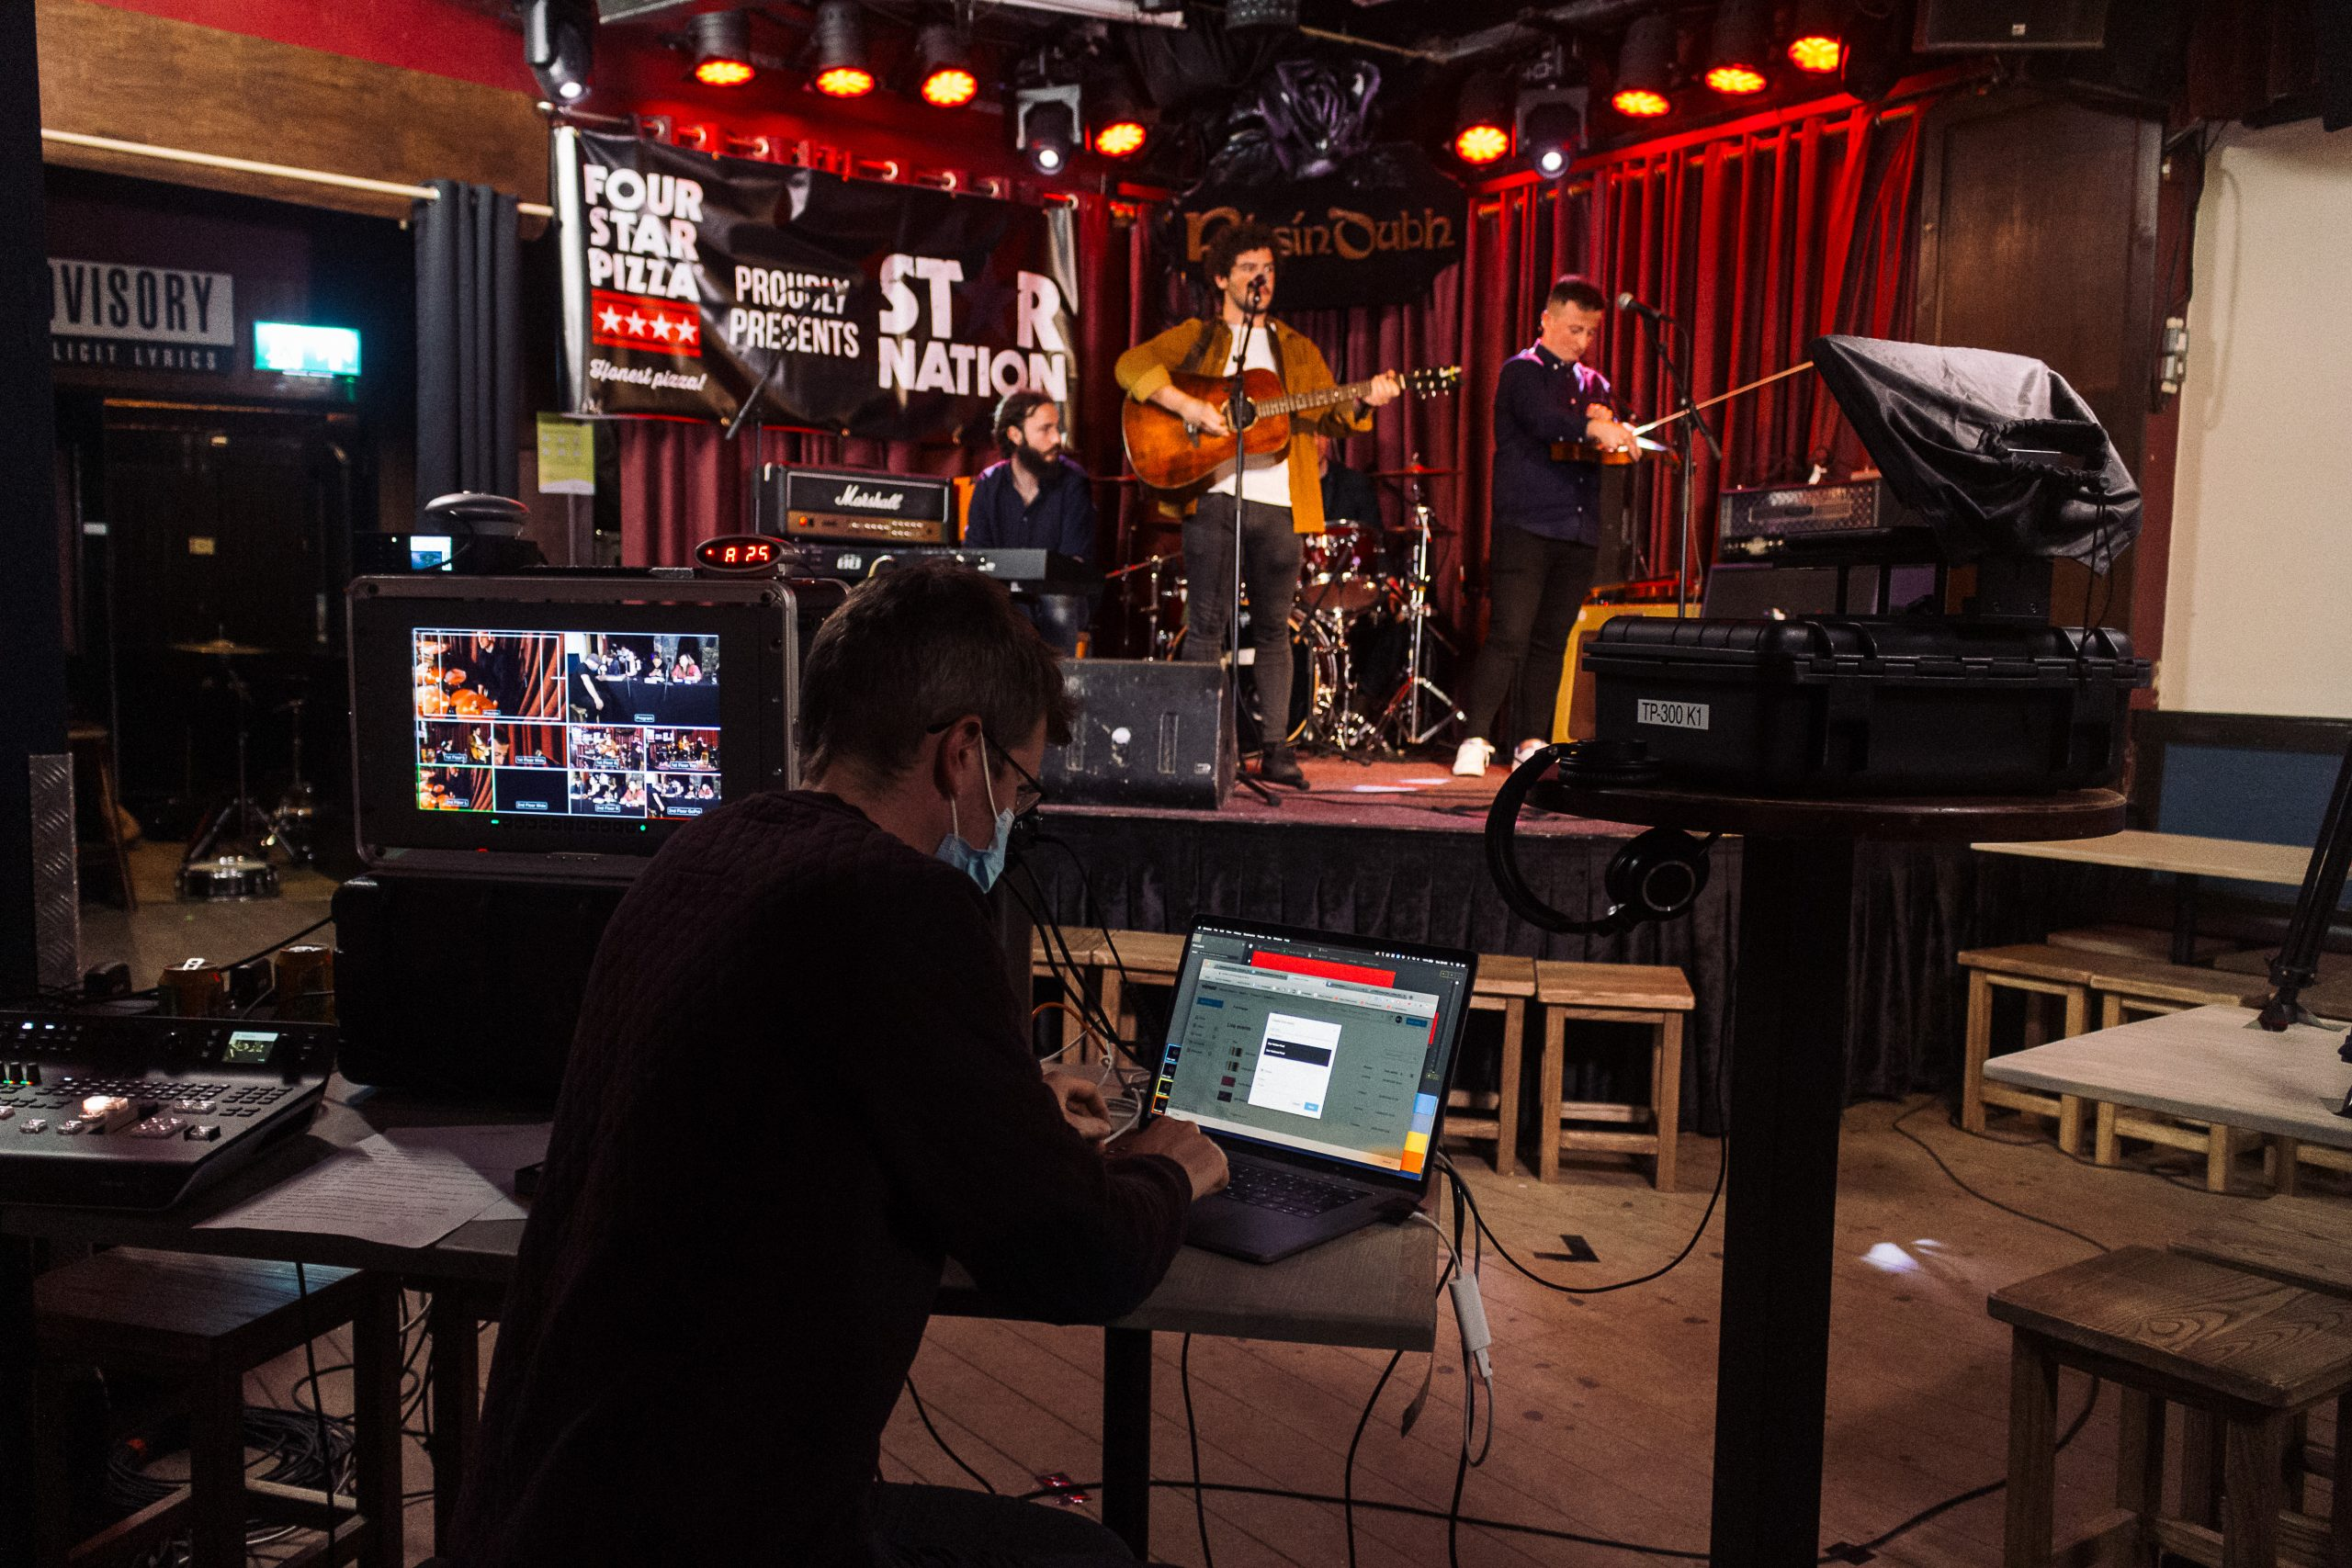 Munster representative Cormac Looby from County Tipperary performs in the Grand Final of Star Nation 2020 at the Roisin Dubh in Galway. The all-Ireland music competition organised by Four Star Pizza was won by Rachel Grace, a young singer songwriter from County Wexford.